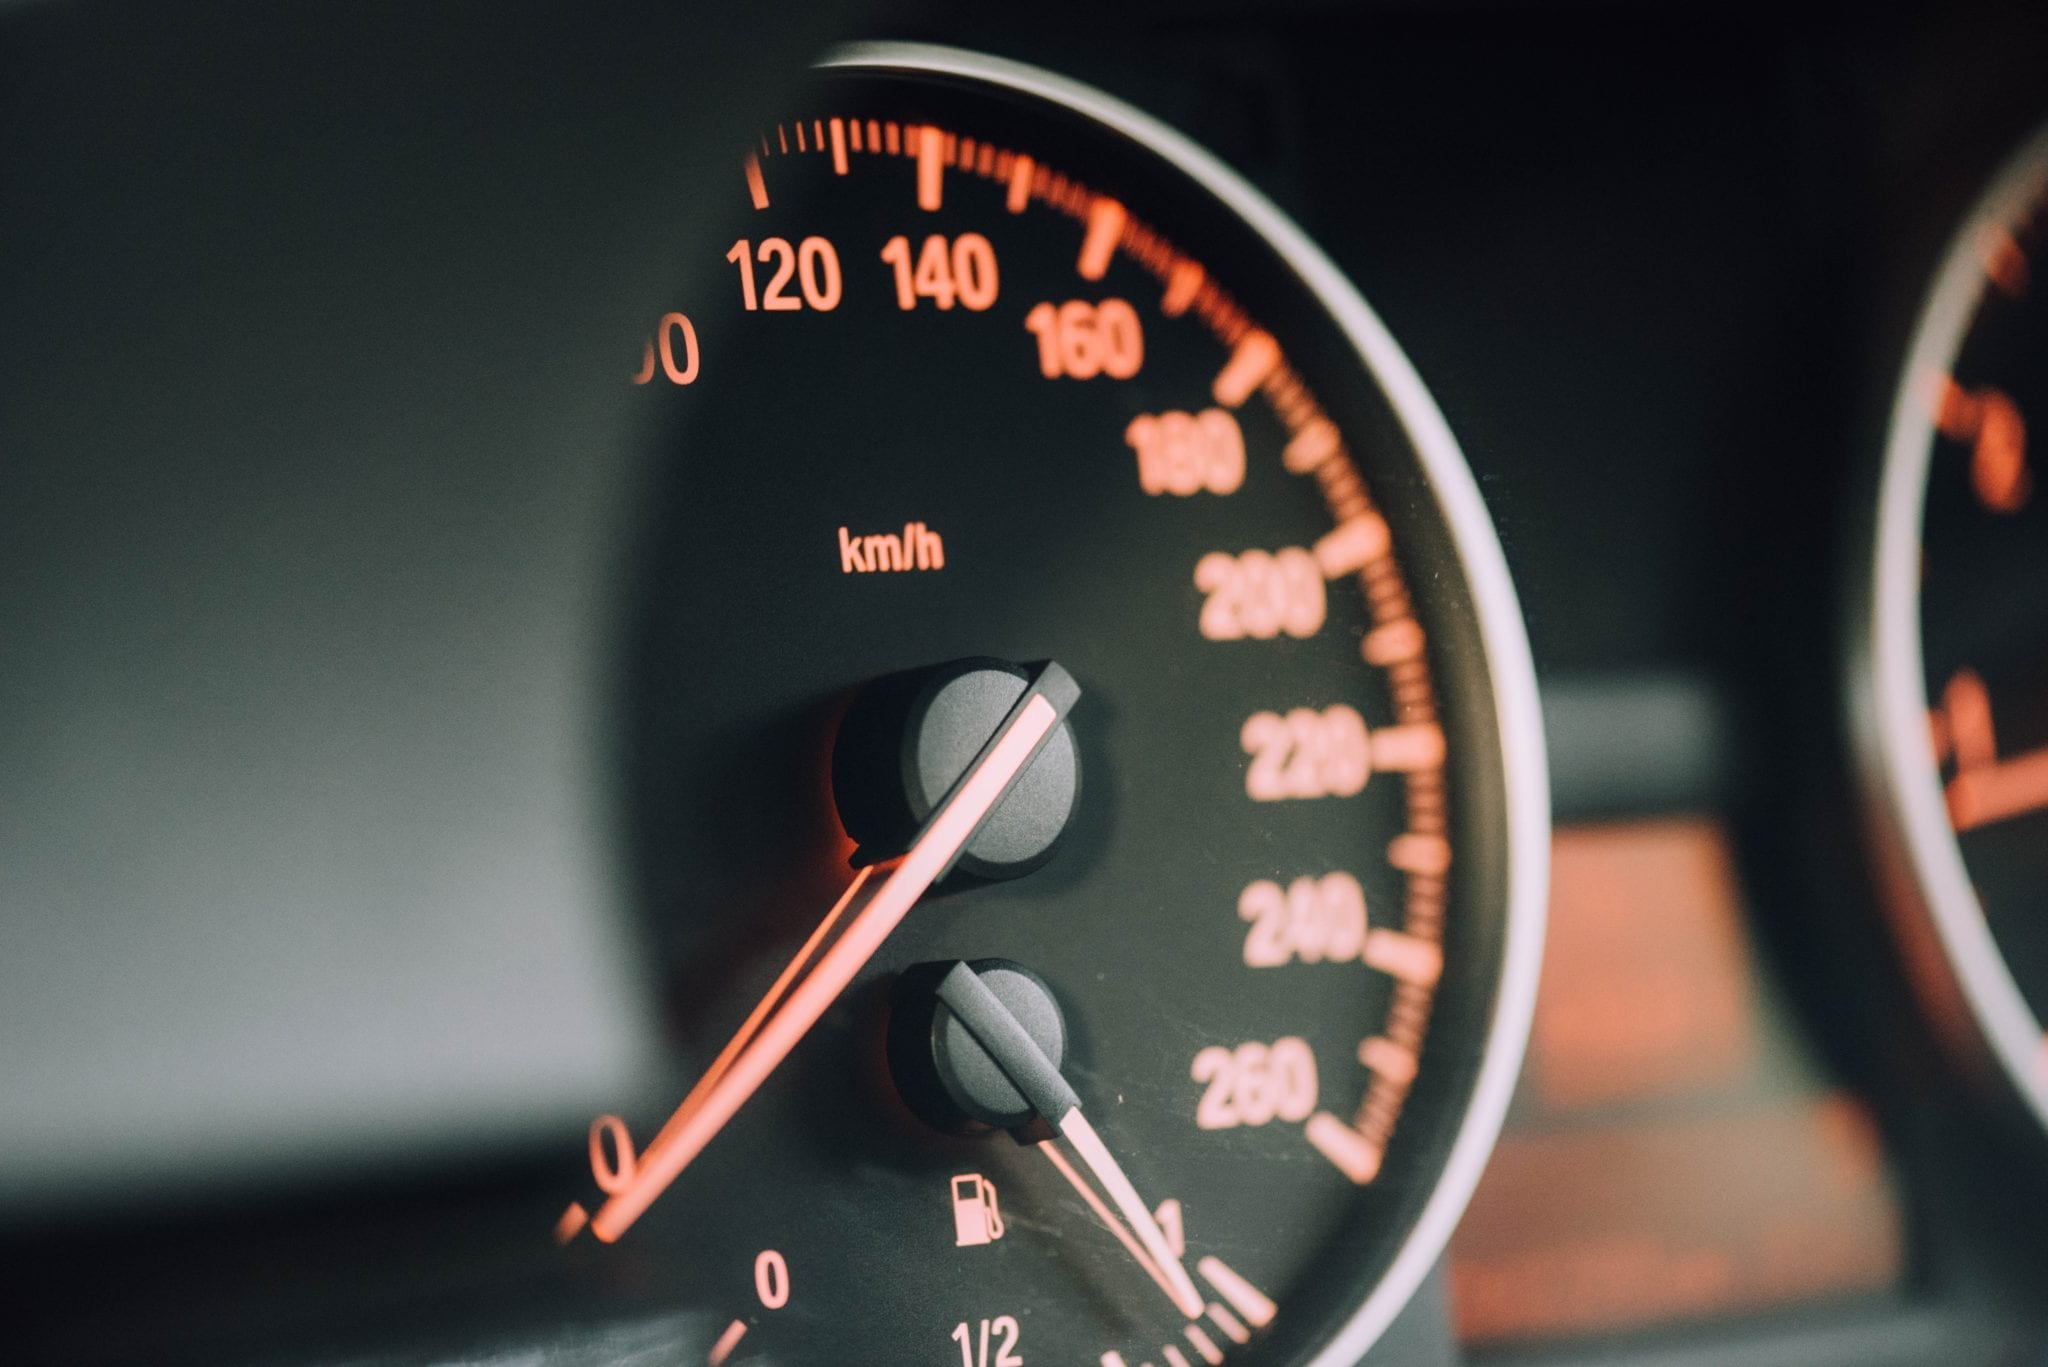 website speed represented by speedometer